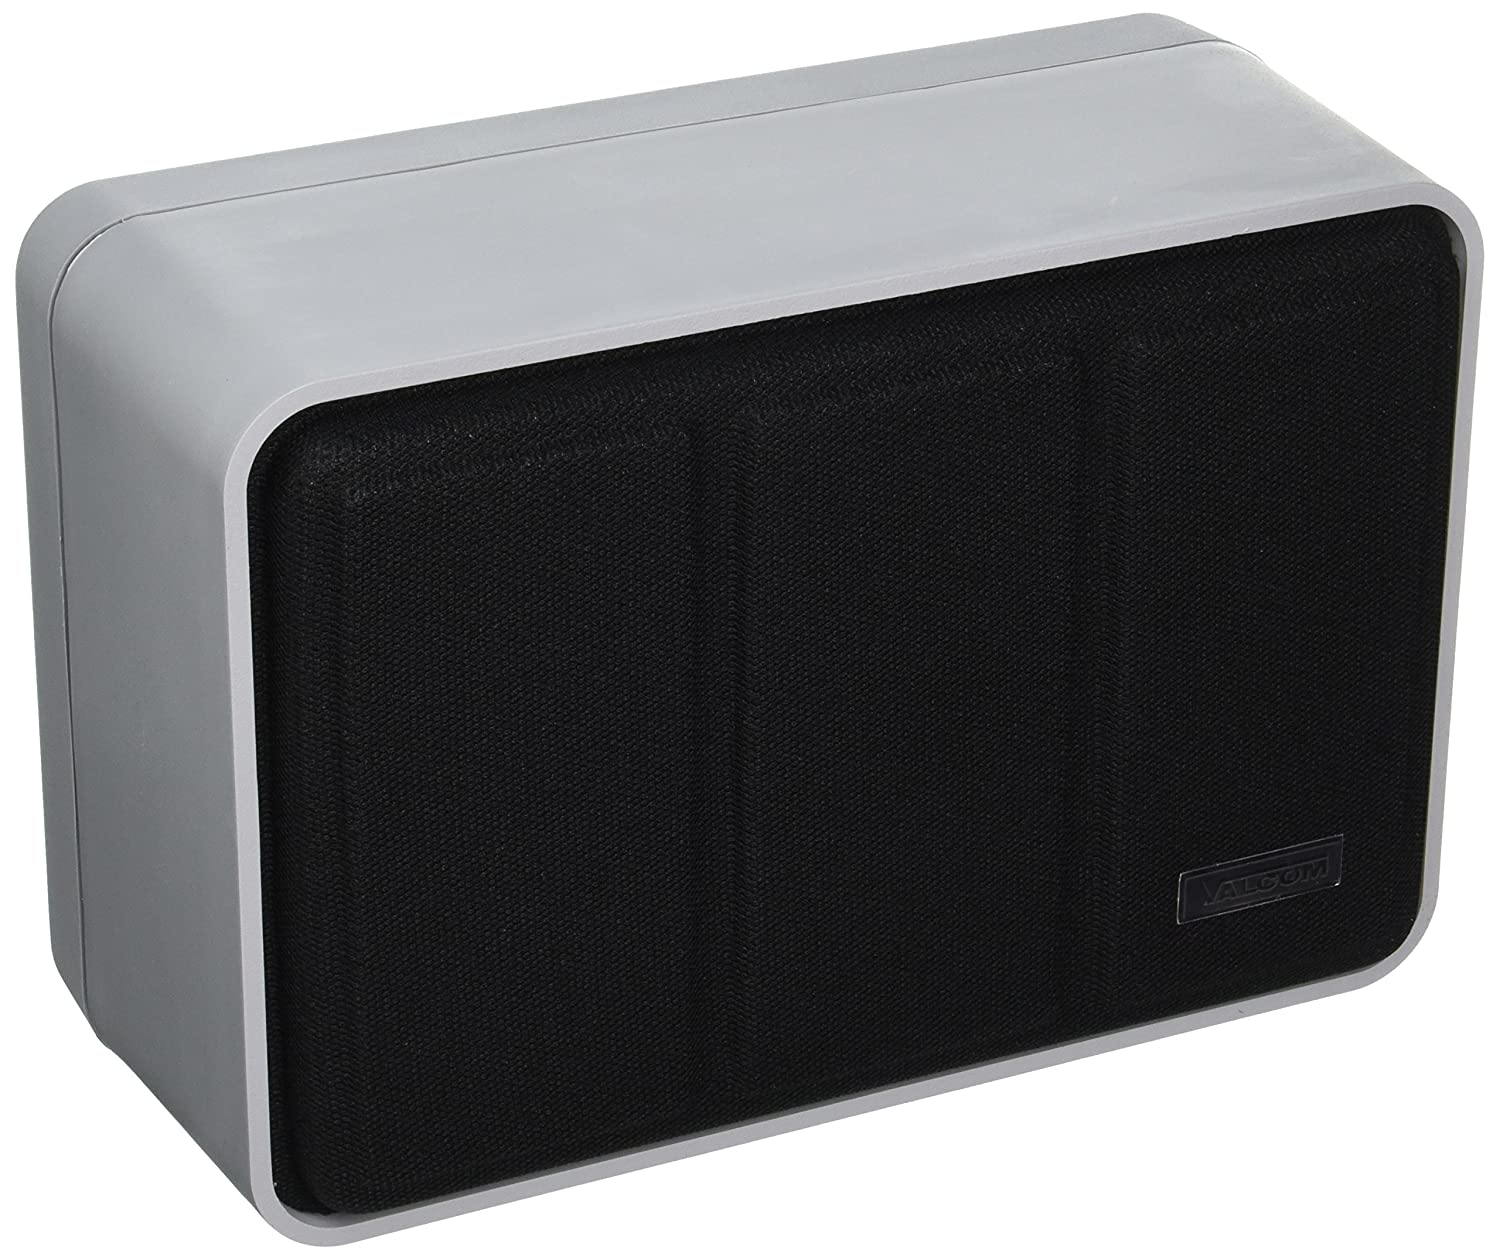 Valcom V-1440-GY Hi Fi Signature Series Monitor Speaker with Black Grille Gray